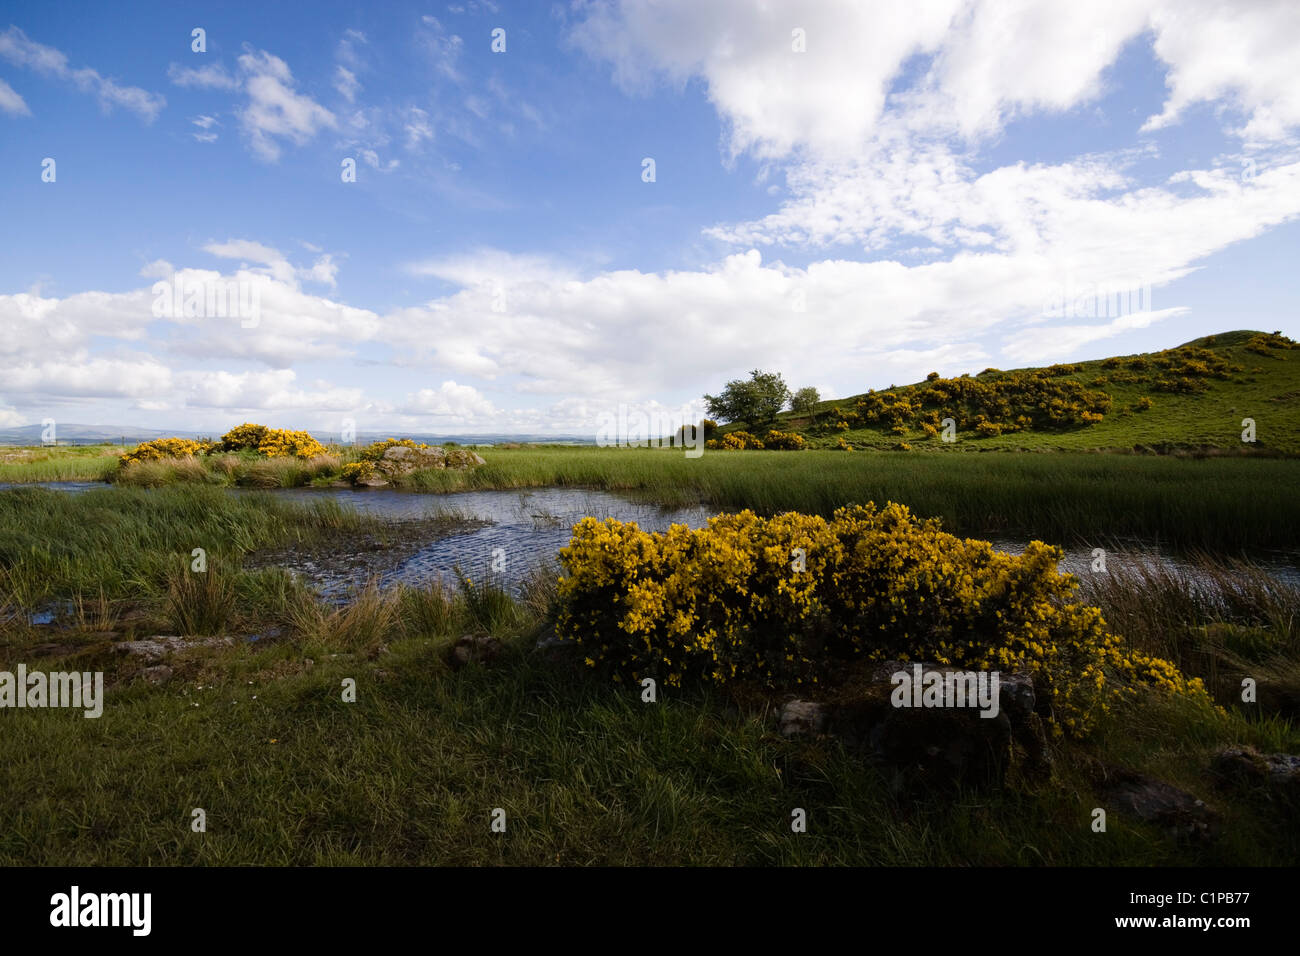 Scotland, Smailholm, gorse growing in countryside near stream - Stock Image